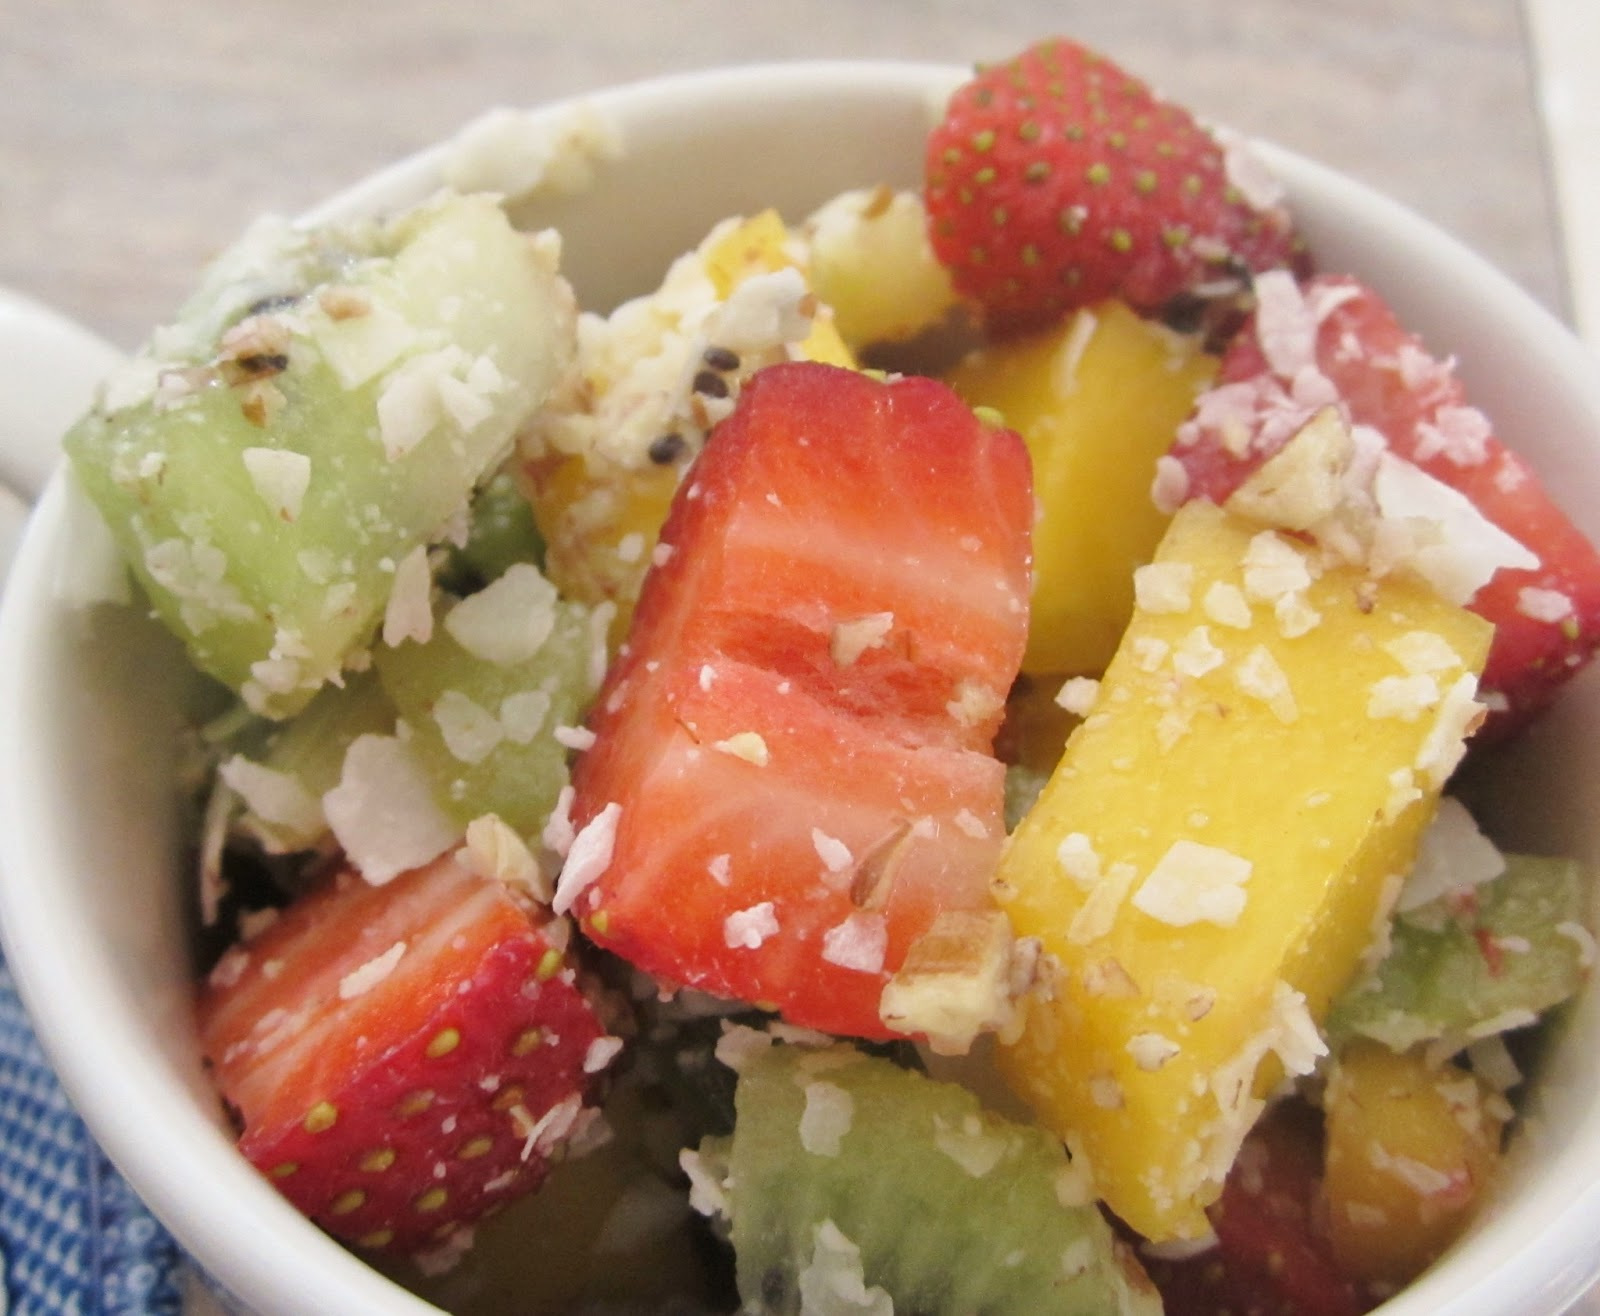 Tropical Fruit Salad — Counting All Joy